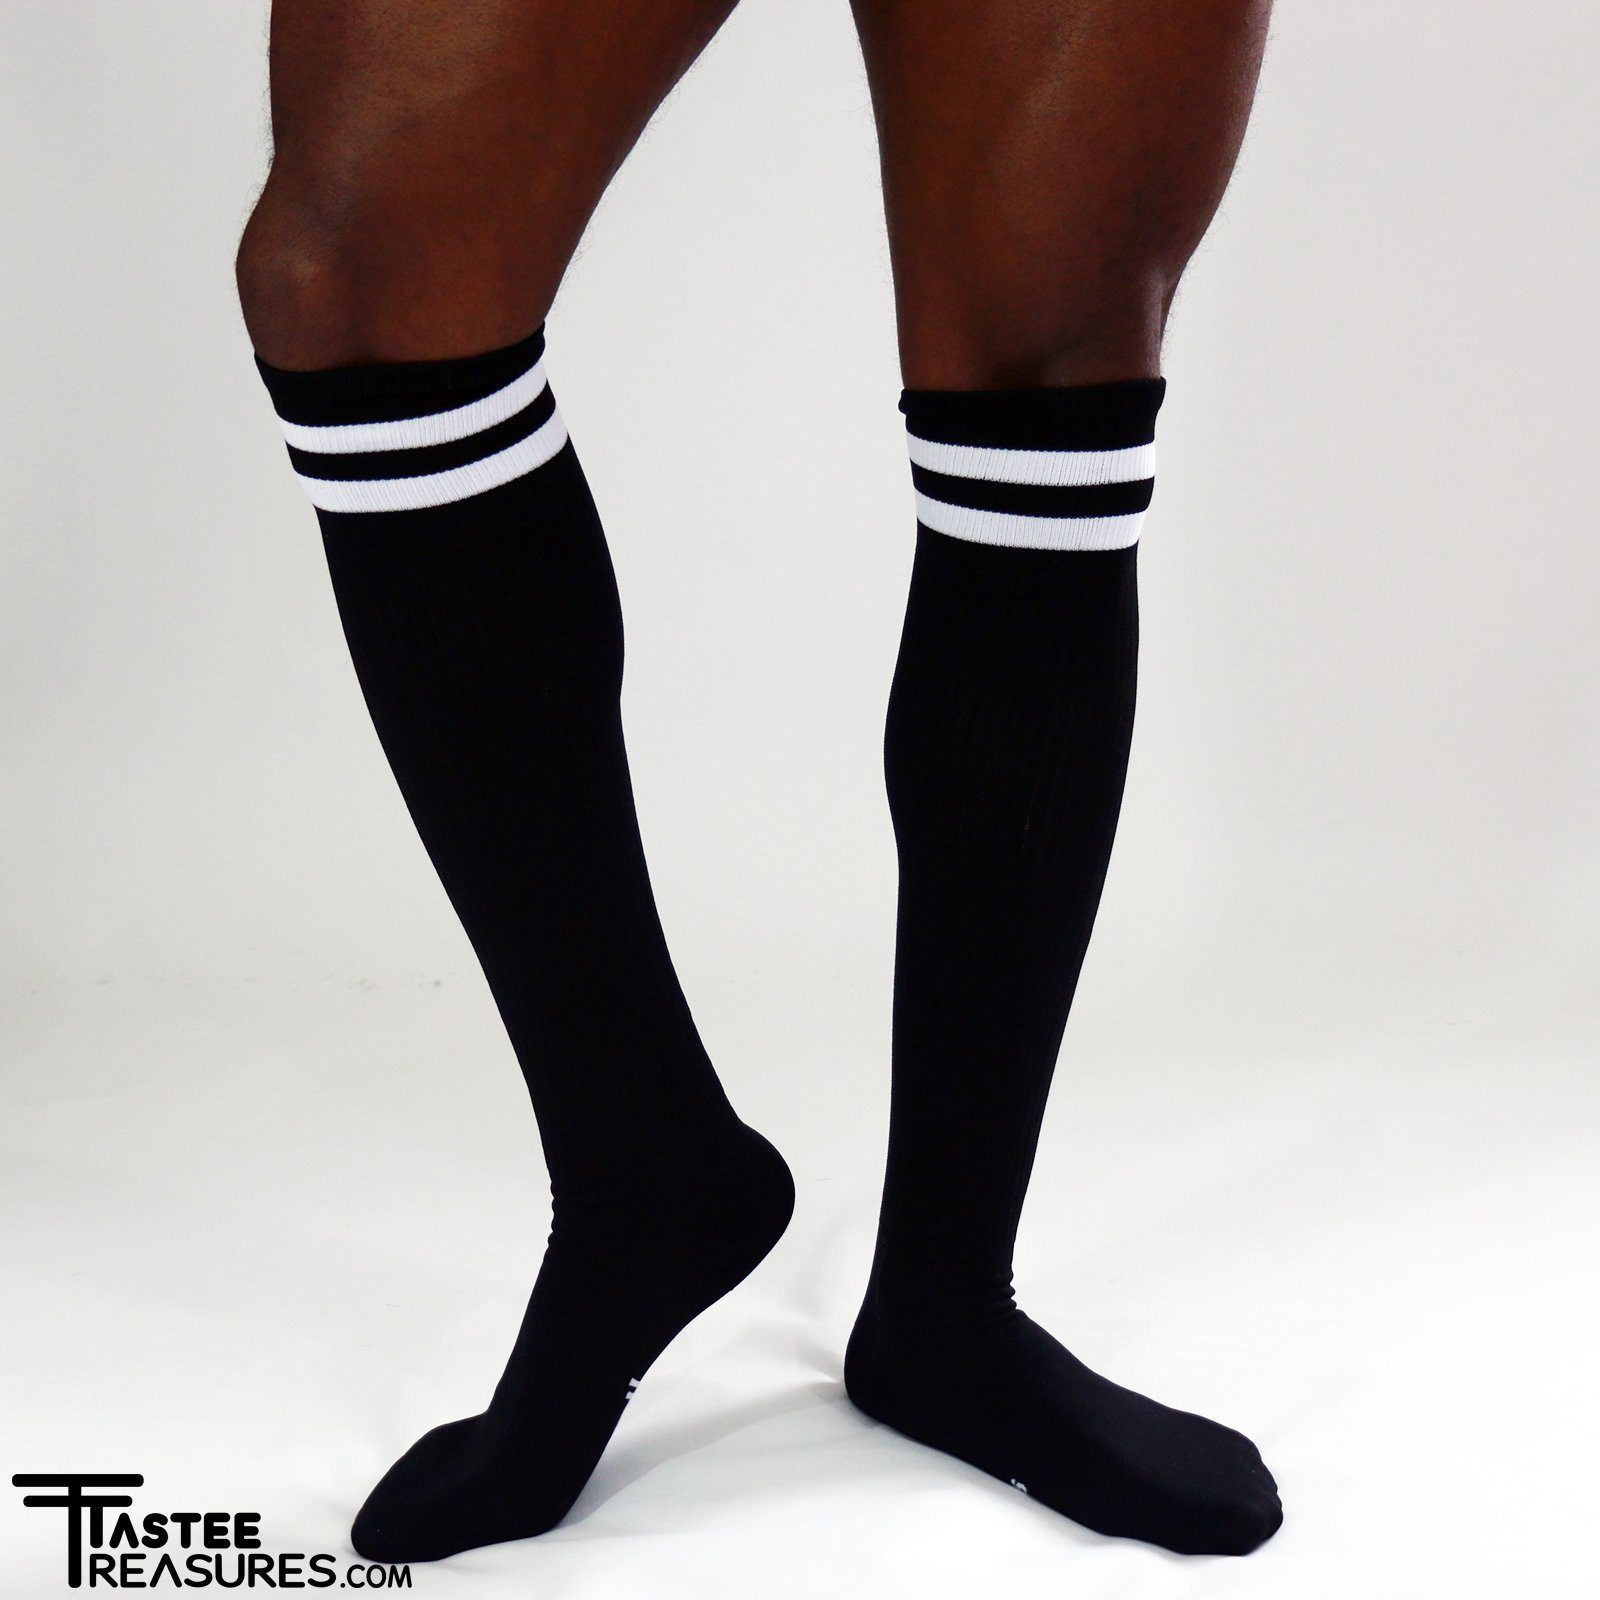 Midnight Mesh Knee High Socks Socks TasteeTreasures Black One Size Fits All